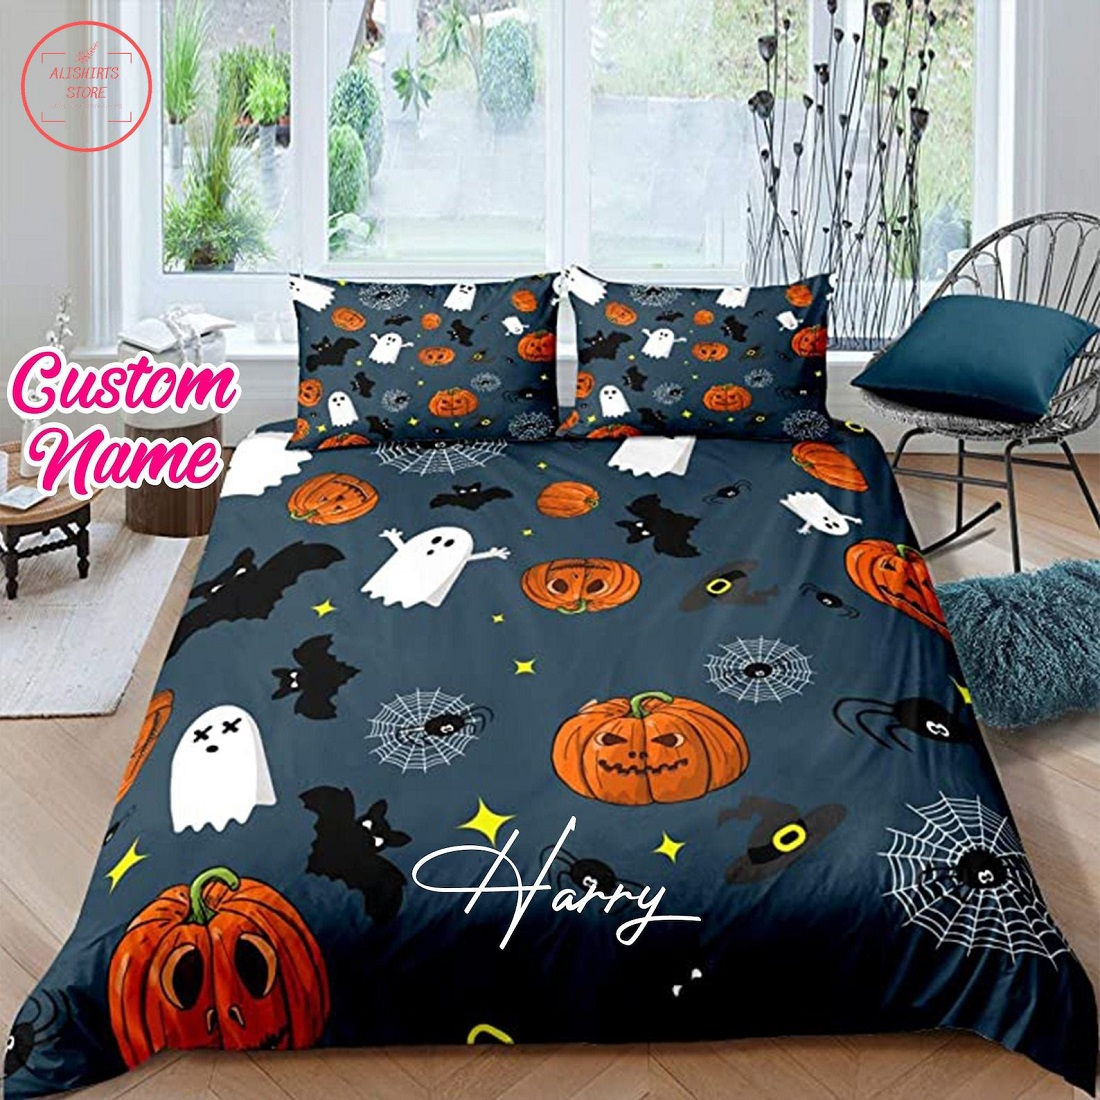 Personalized Halloween Perfect Idea Gifts Quilt Bedding Sets